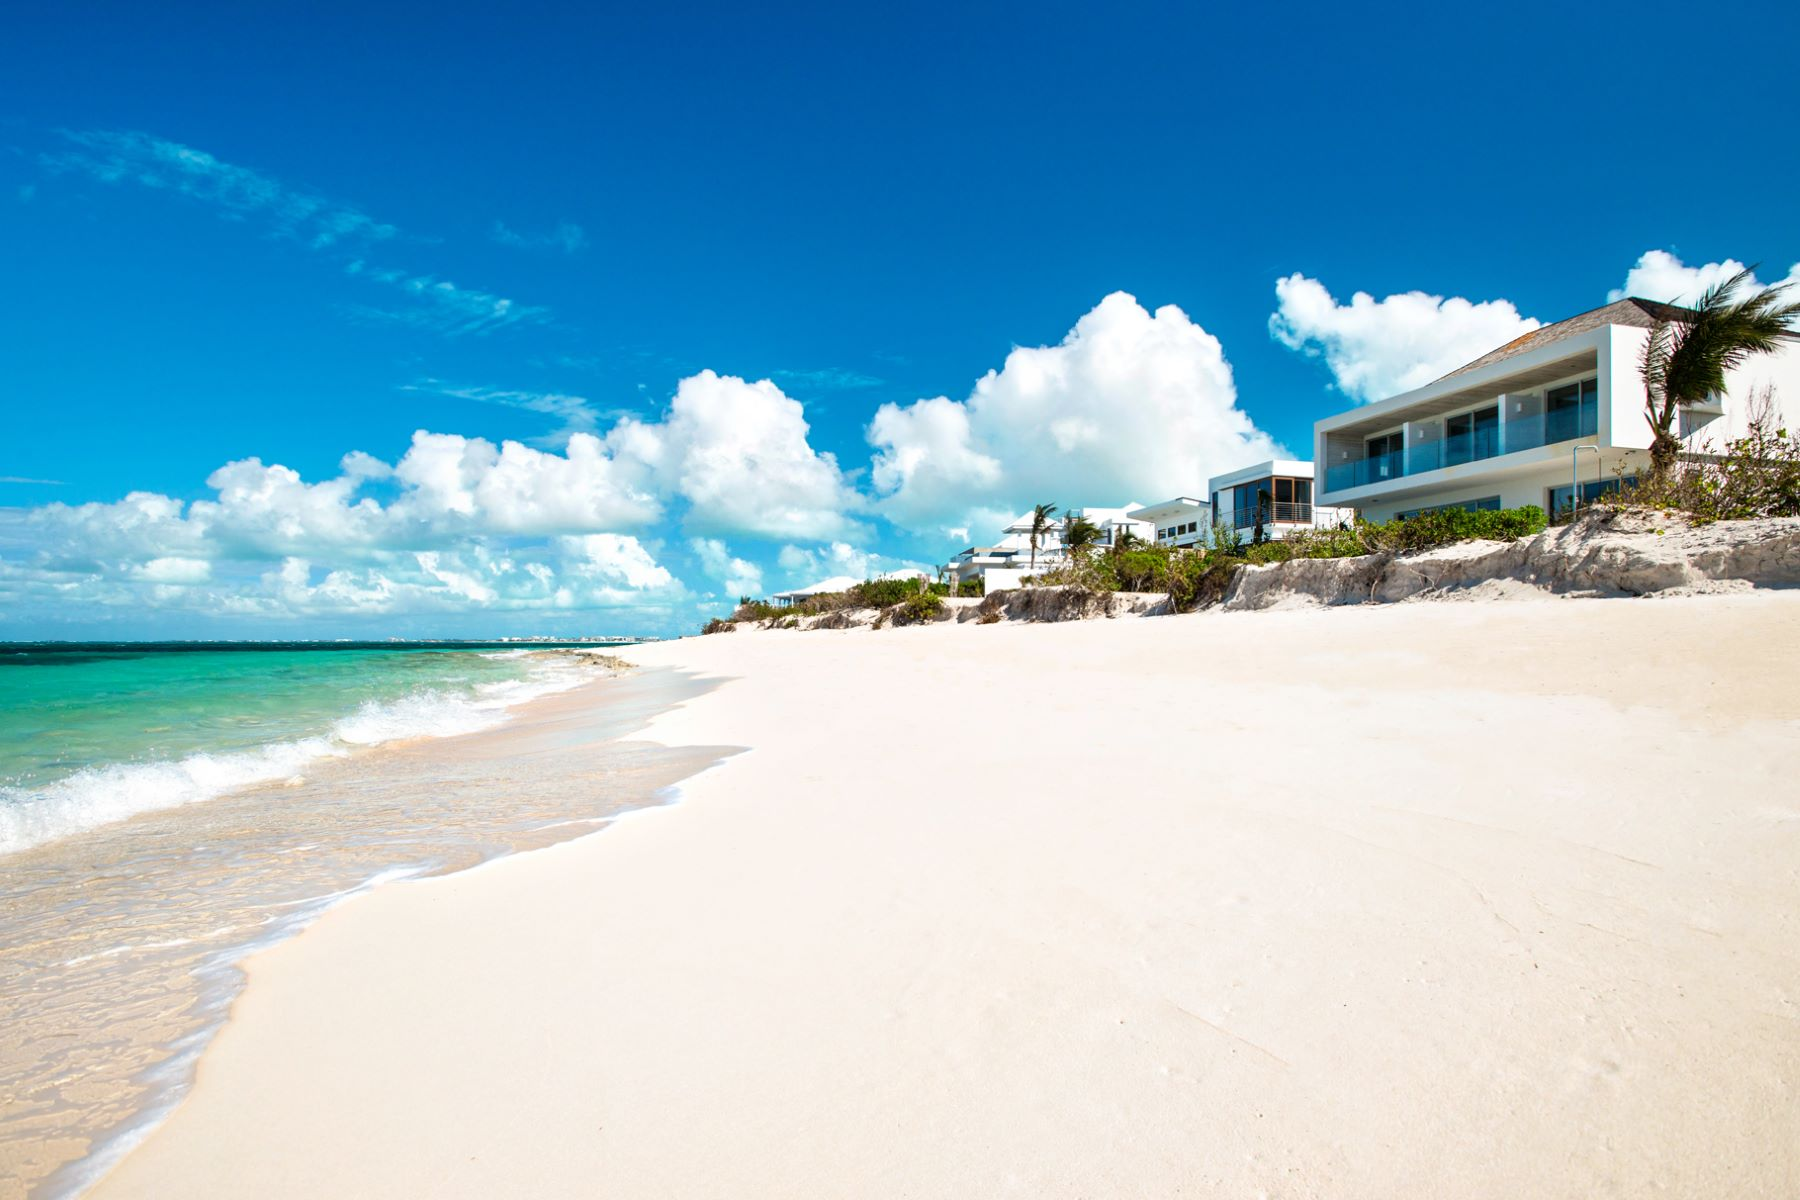 Single Family Home for Sale at The Dunes Villa 1 ~ Managed by Grace Bay Resorts North Shore Beachfront Turtle Cove, Providenciales TC Turks And Caicos Islands